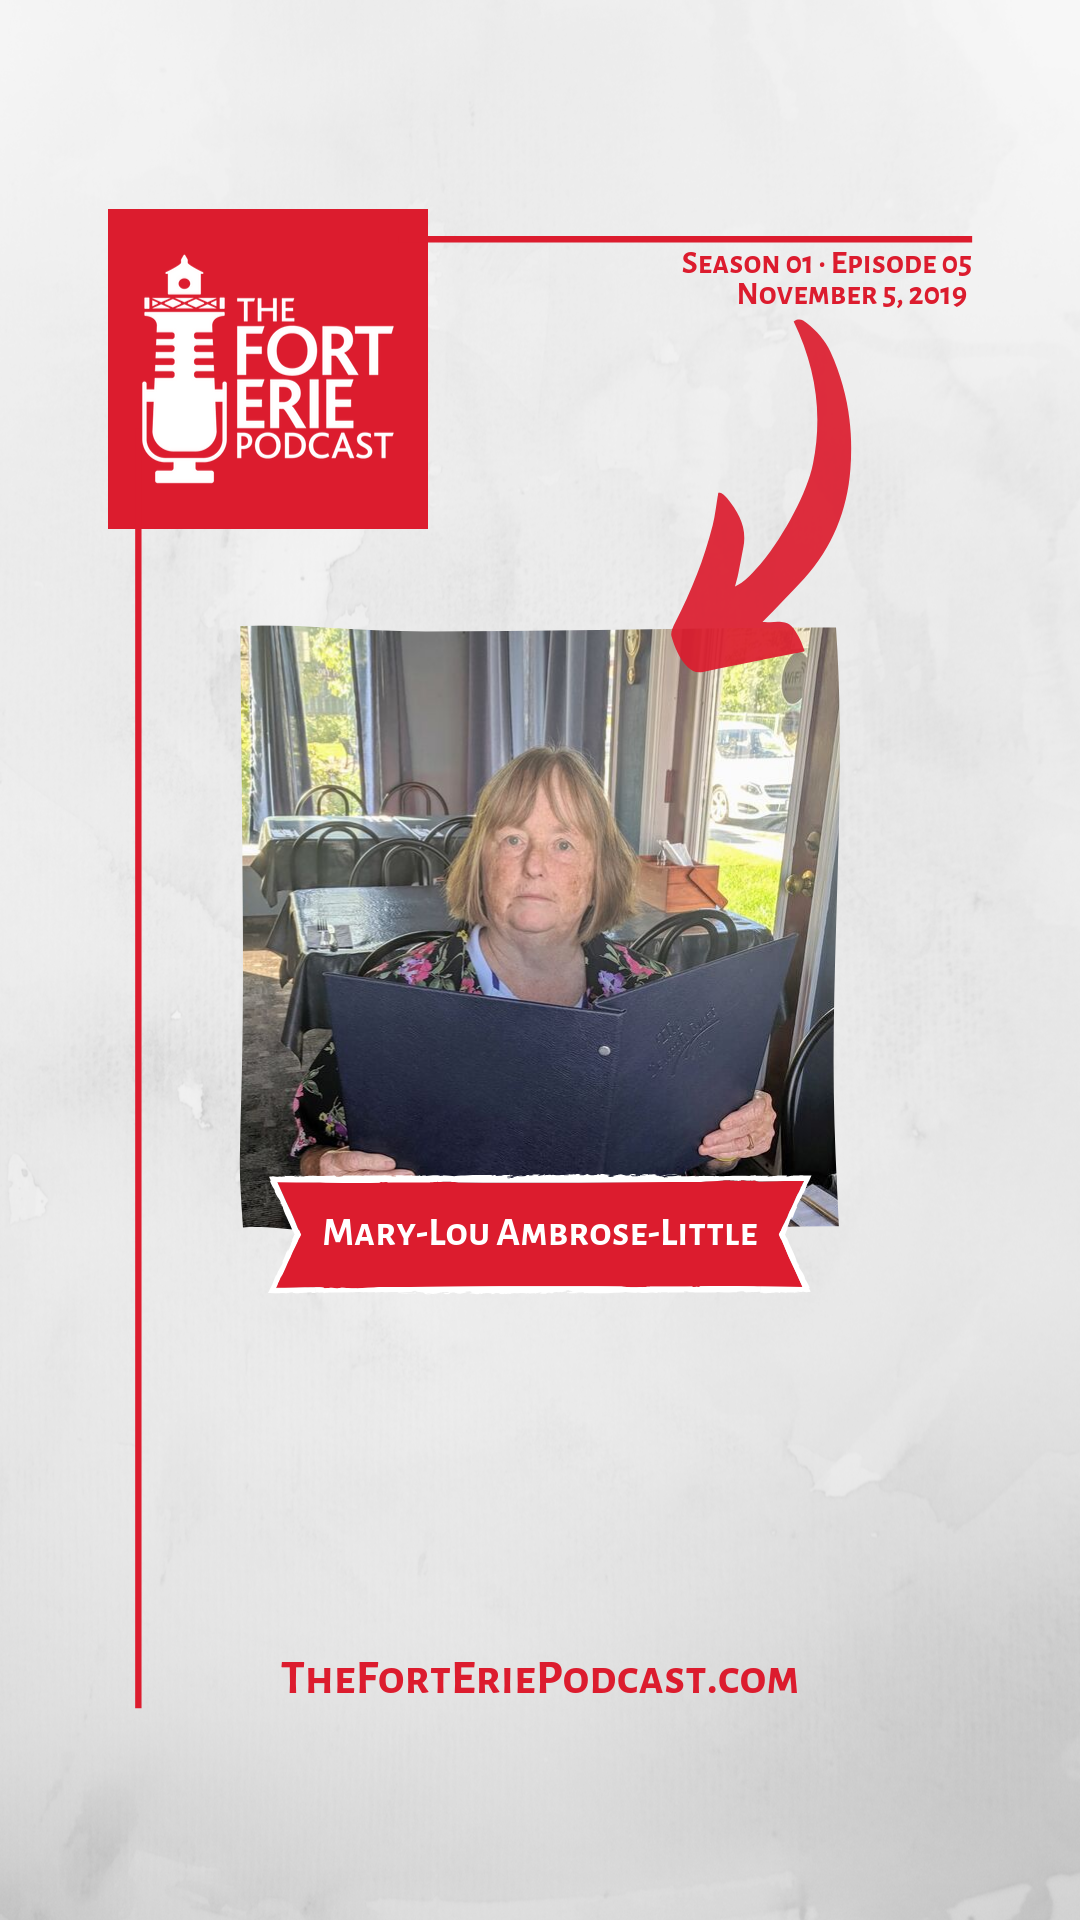 S01E05 – Mary-Lou Ambrose-Little – Market and Events Manager, Ridgeway Farmers' Market